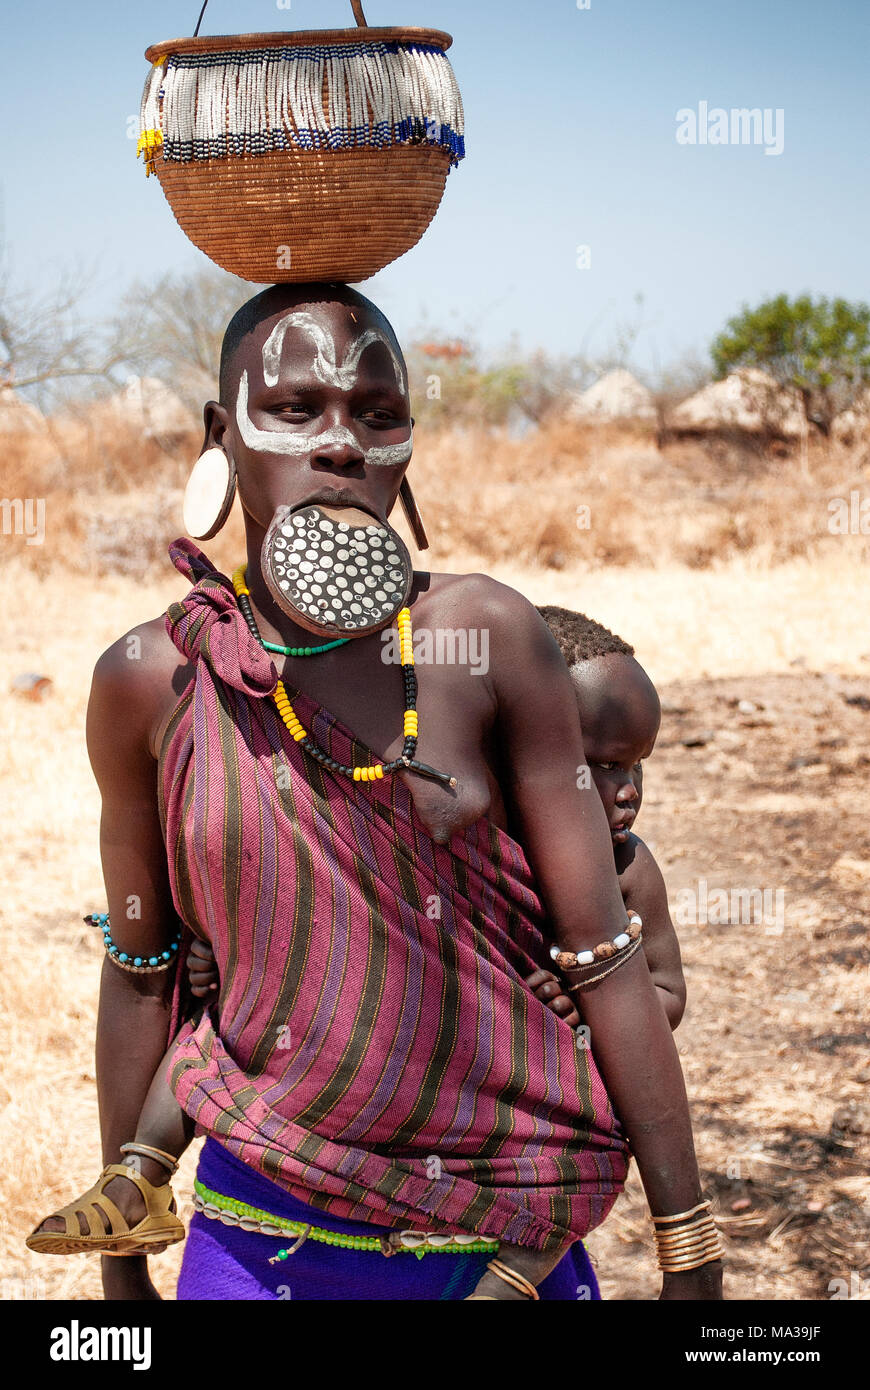 Mursi woman with labial plate and son on her back, ethnic minorities of the lower Omo valley - Ethiopia. © Antonio Ciufo - Stock Image